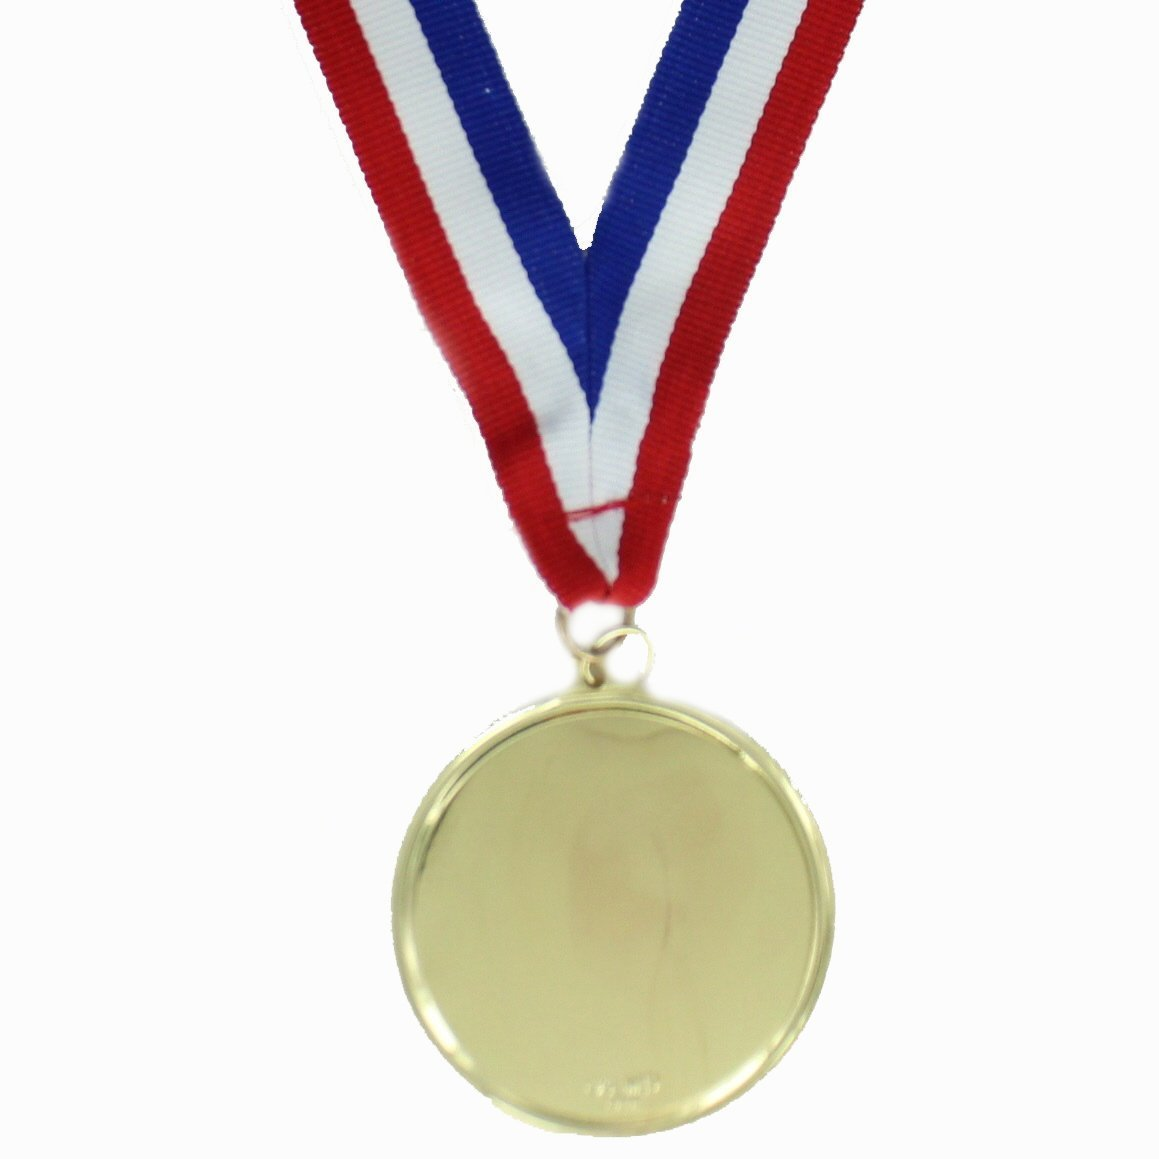 Student of the Month Medal comes with Neck Ribbon - Pack of 12 by Awards and Gifts R Us